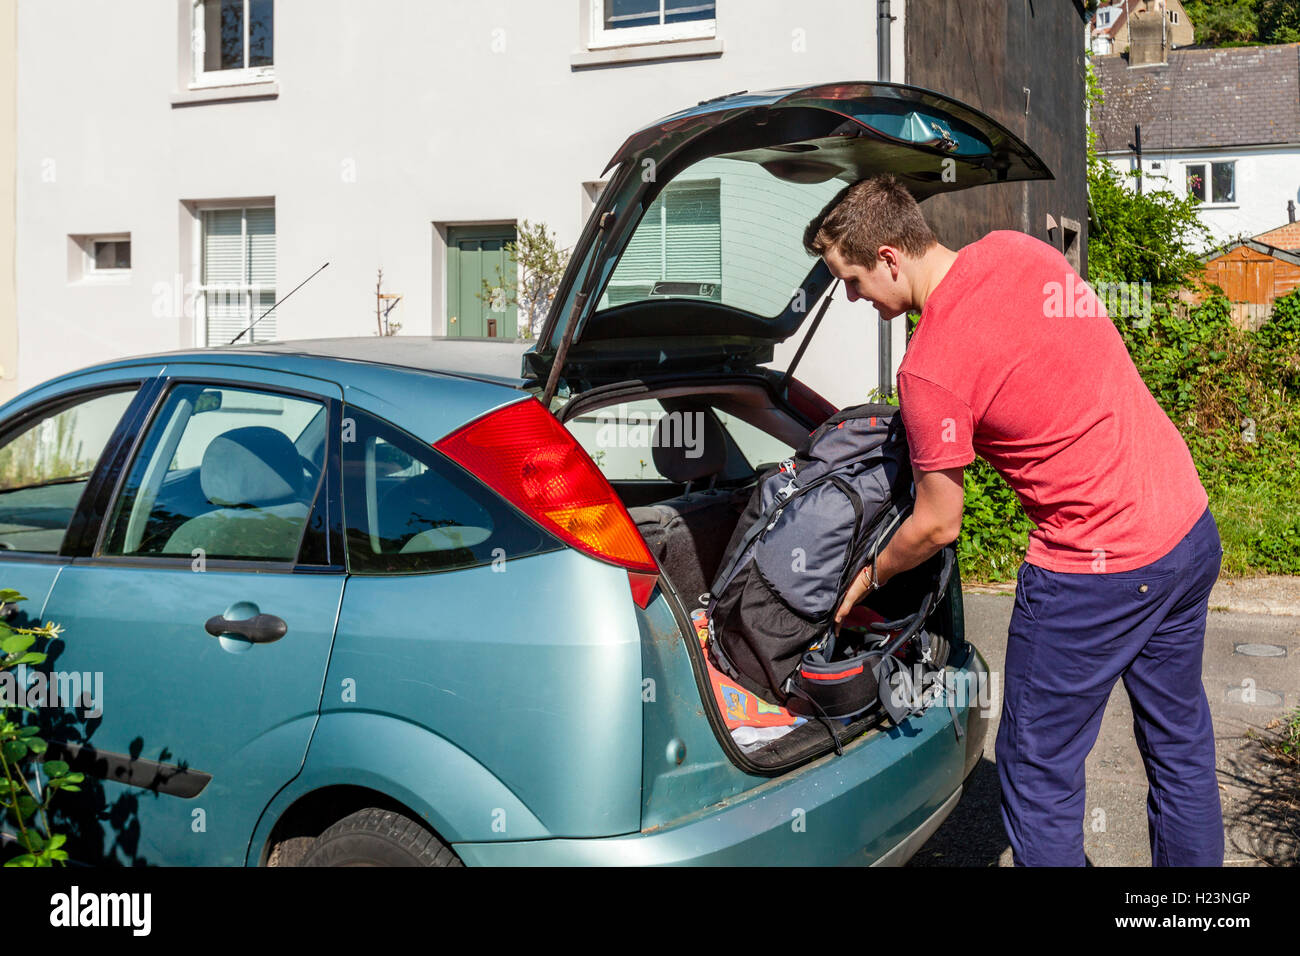 A Young Man Puts His Backpack Into A Car To Go Travelling, Sussex, UK - Stock Image